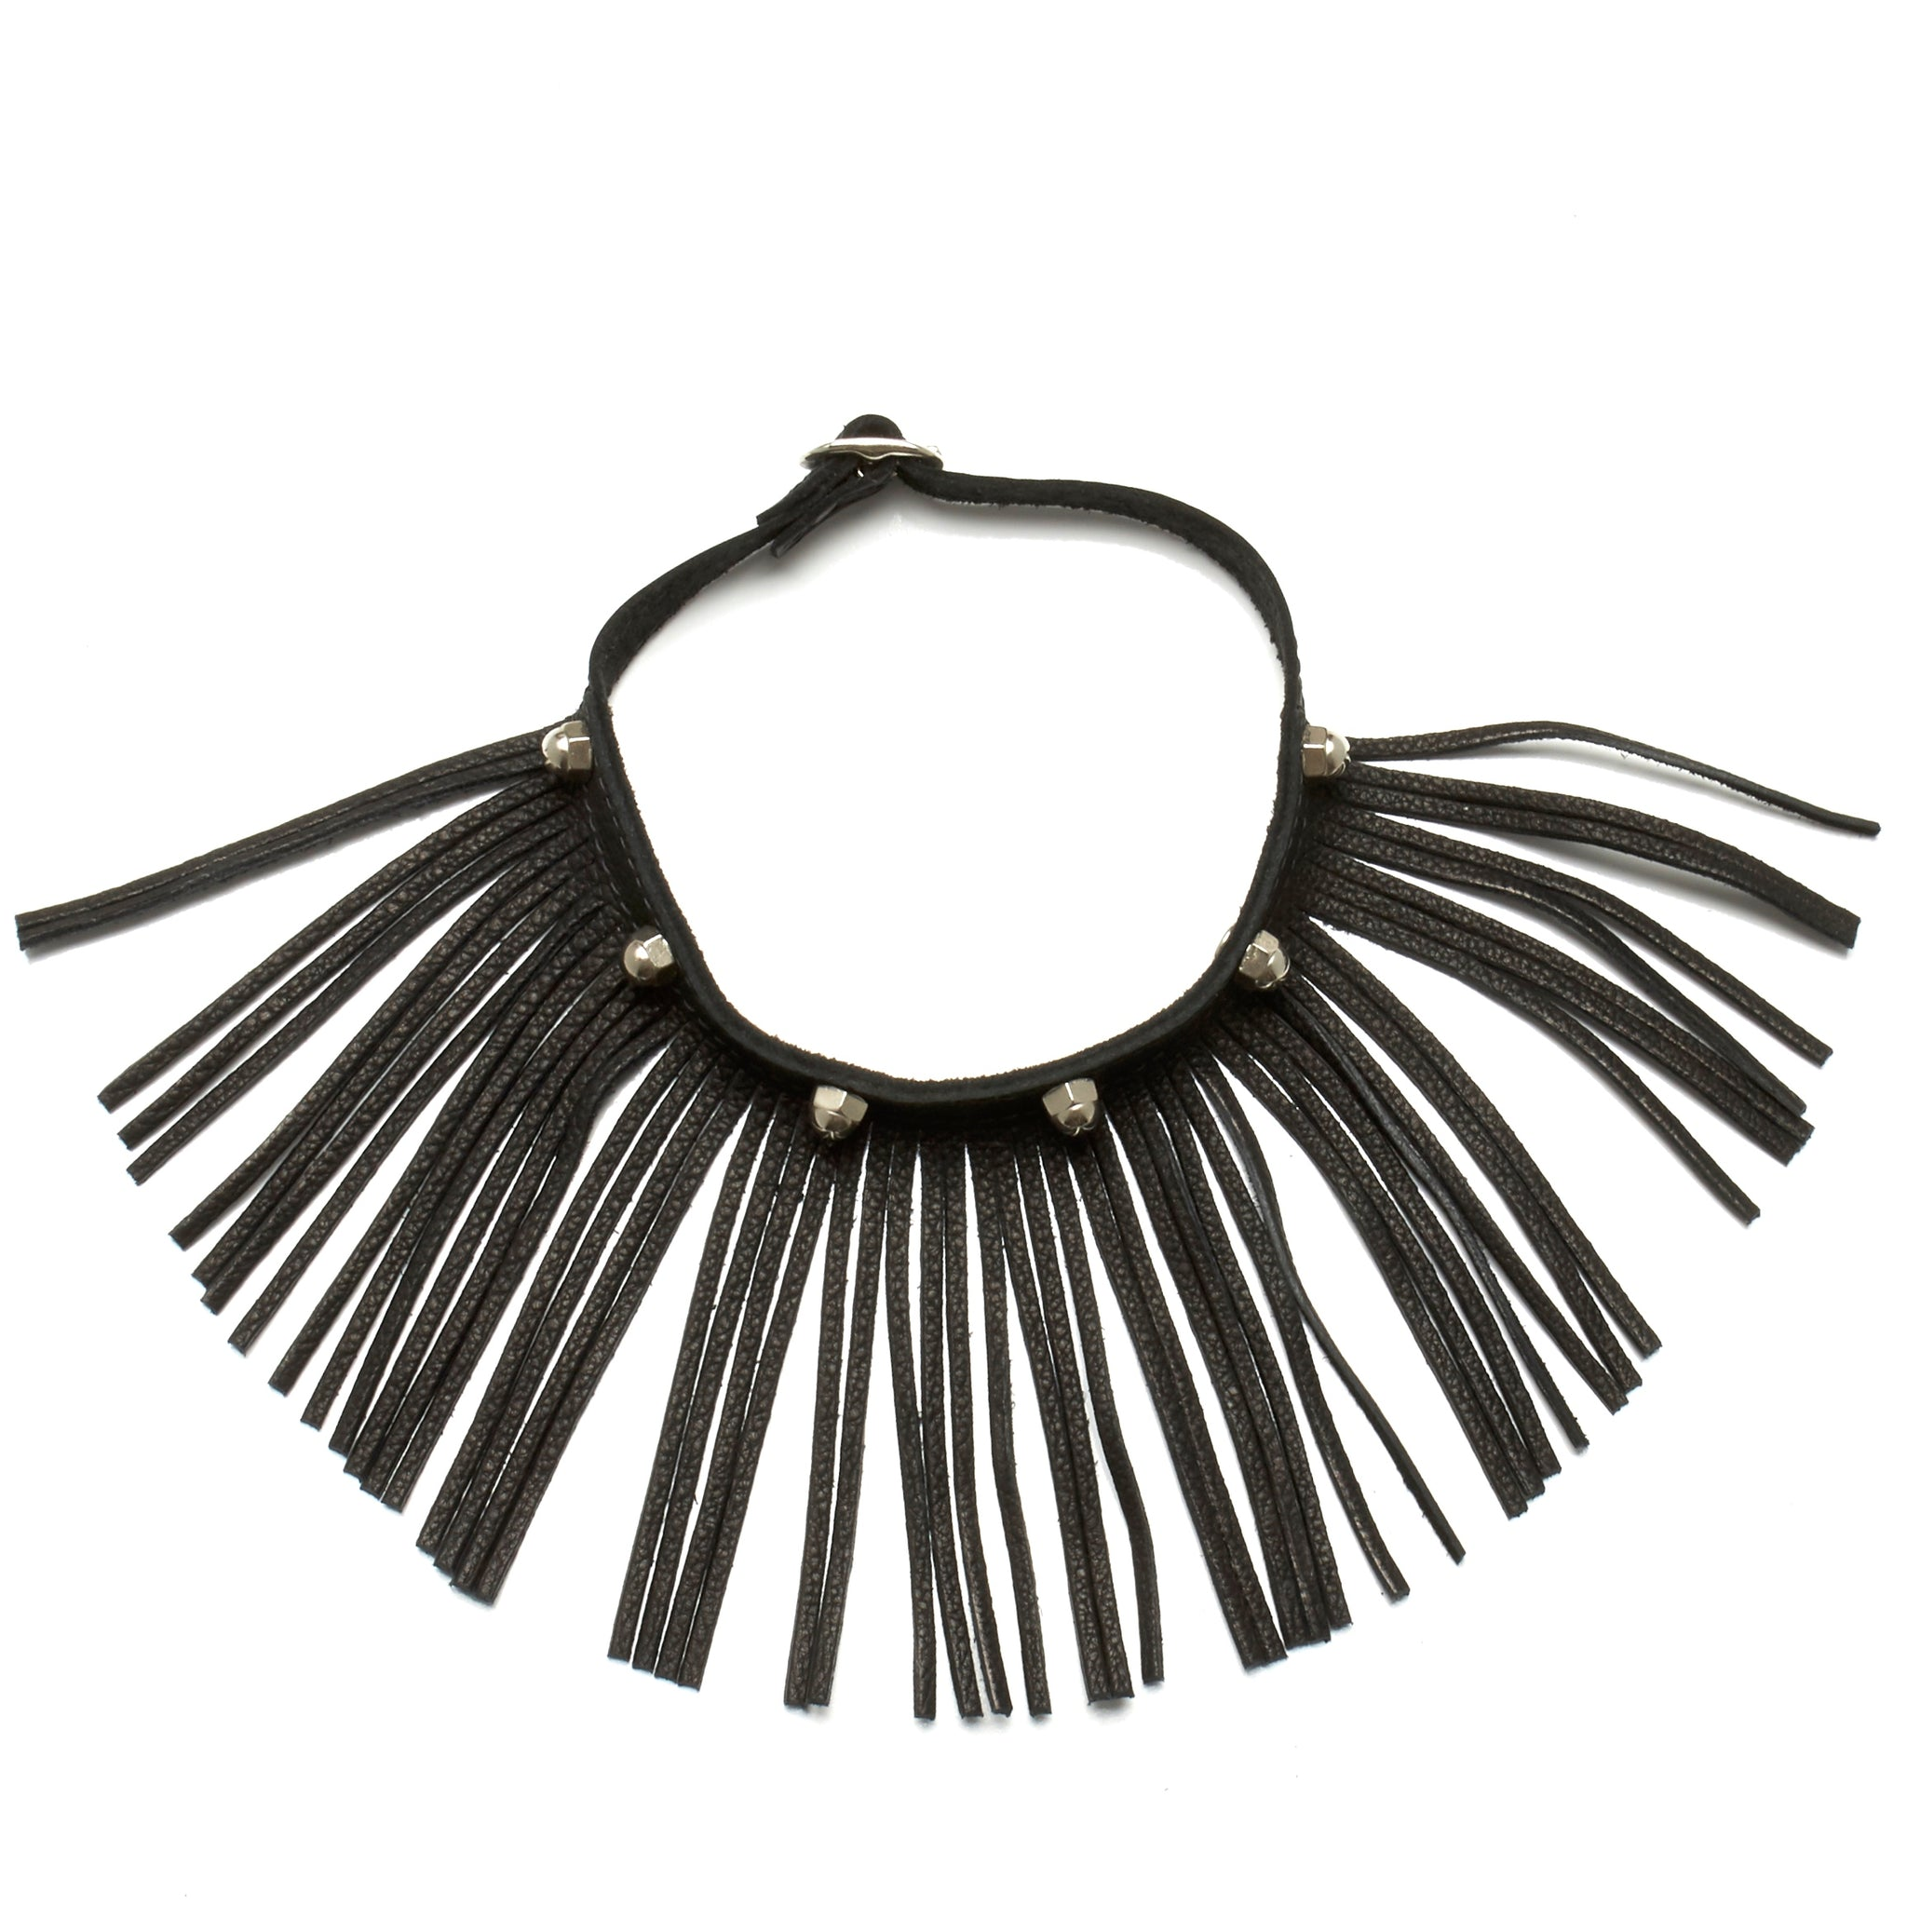 LEATHER CHOKER NECKLACE WITH DEERSKIN LEATHER FRINGE AND STAINLESS STEEL HARDWARE by nyet jewelry